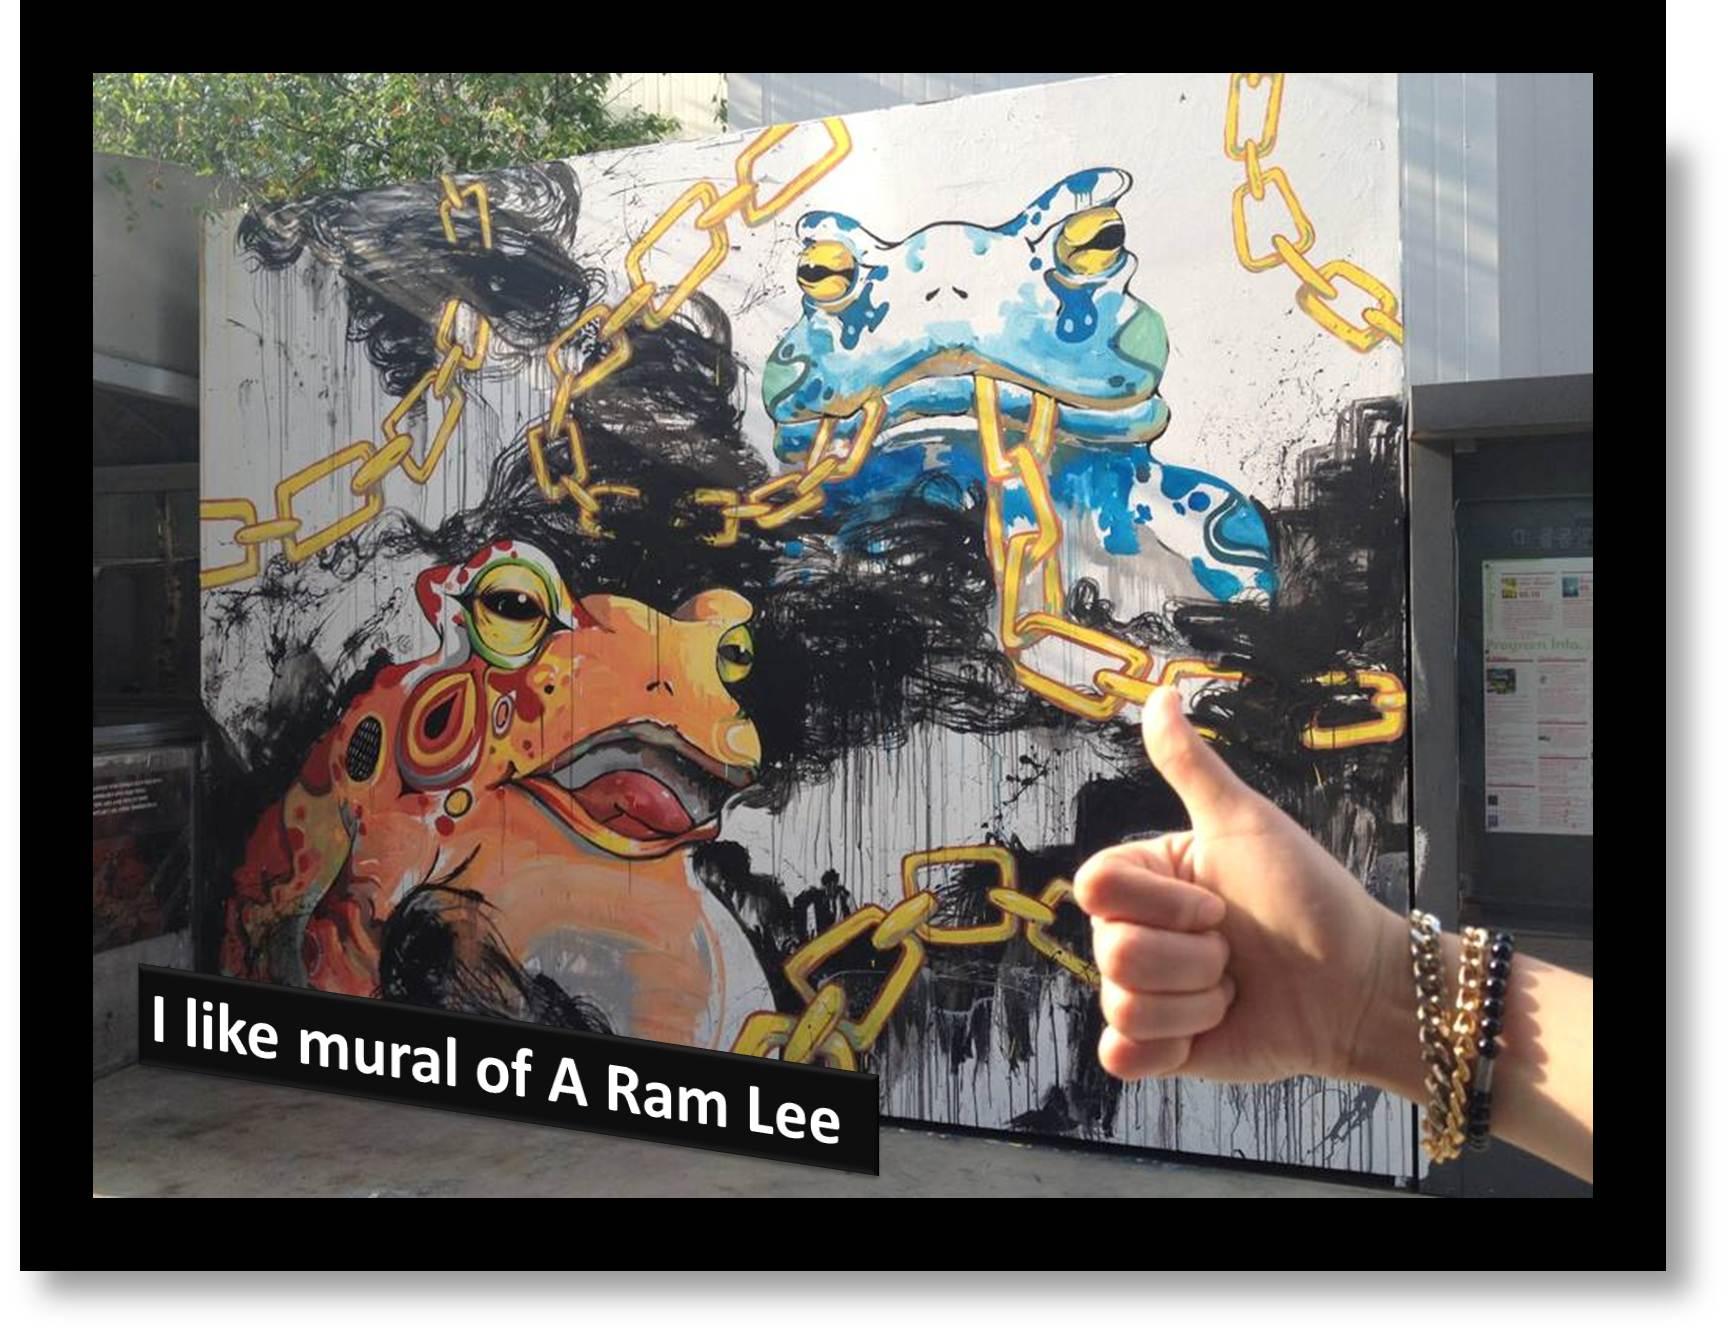 1st mission of 2013 - I LIKE mural of A Ram Lee